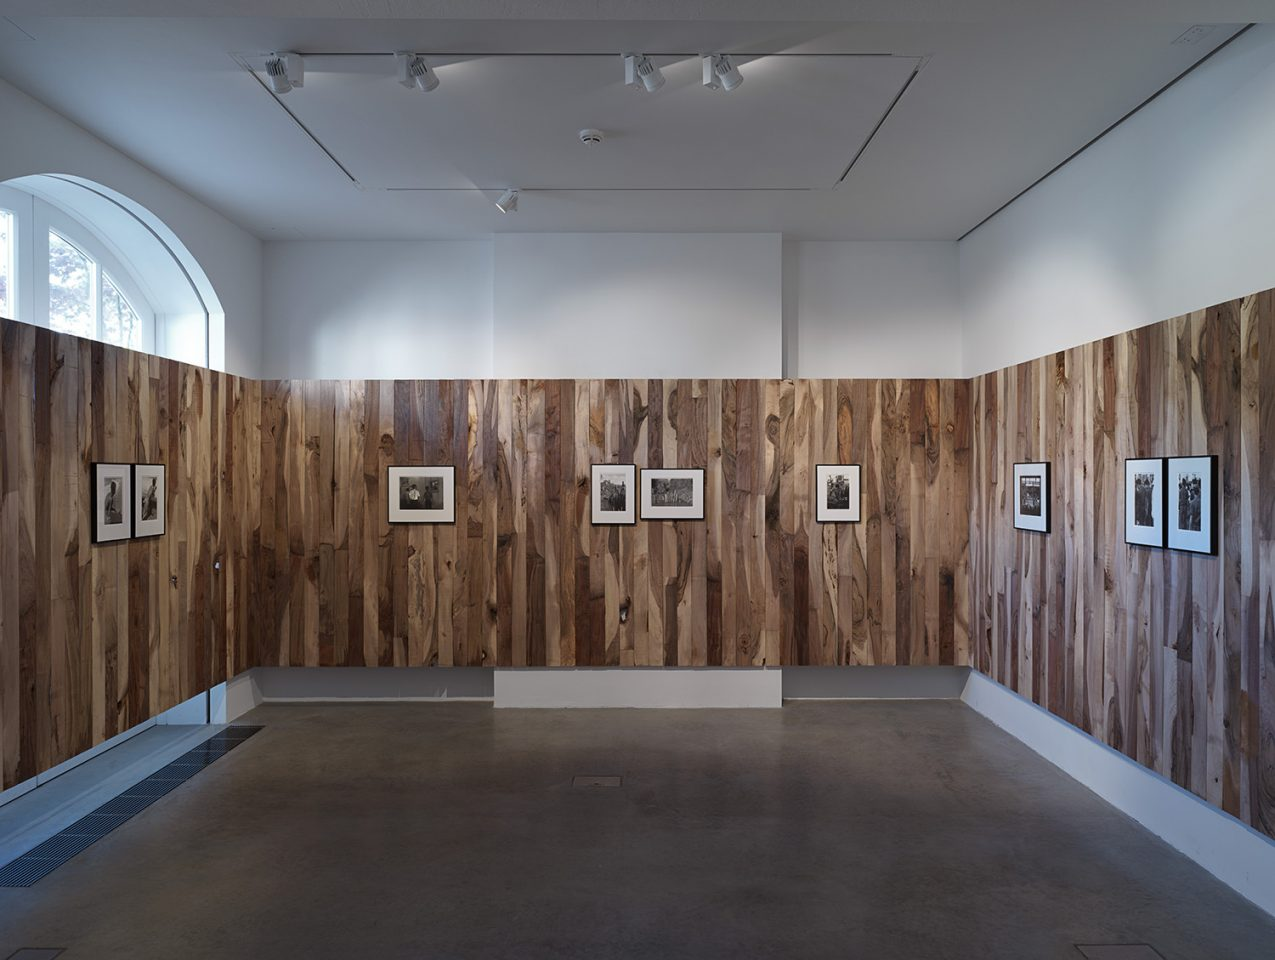 Danh Vo,Photographs of Dr. Joseph M. Carrier 1962–1973, 2010 Installation view at the South London Gallery, 2019 Courtesy the artist. Photo: Nick Ash